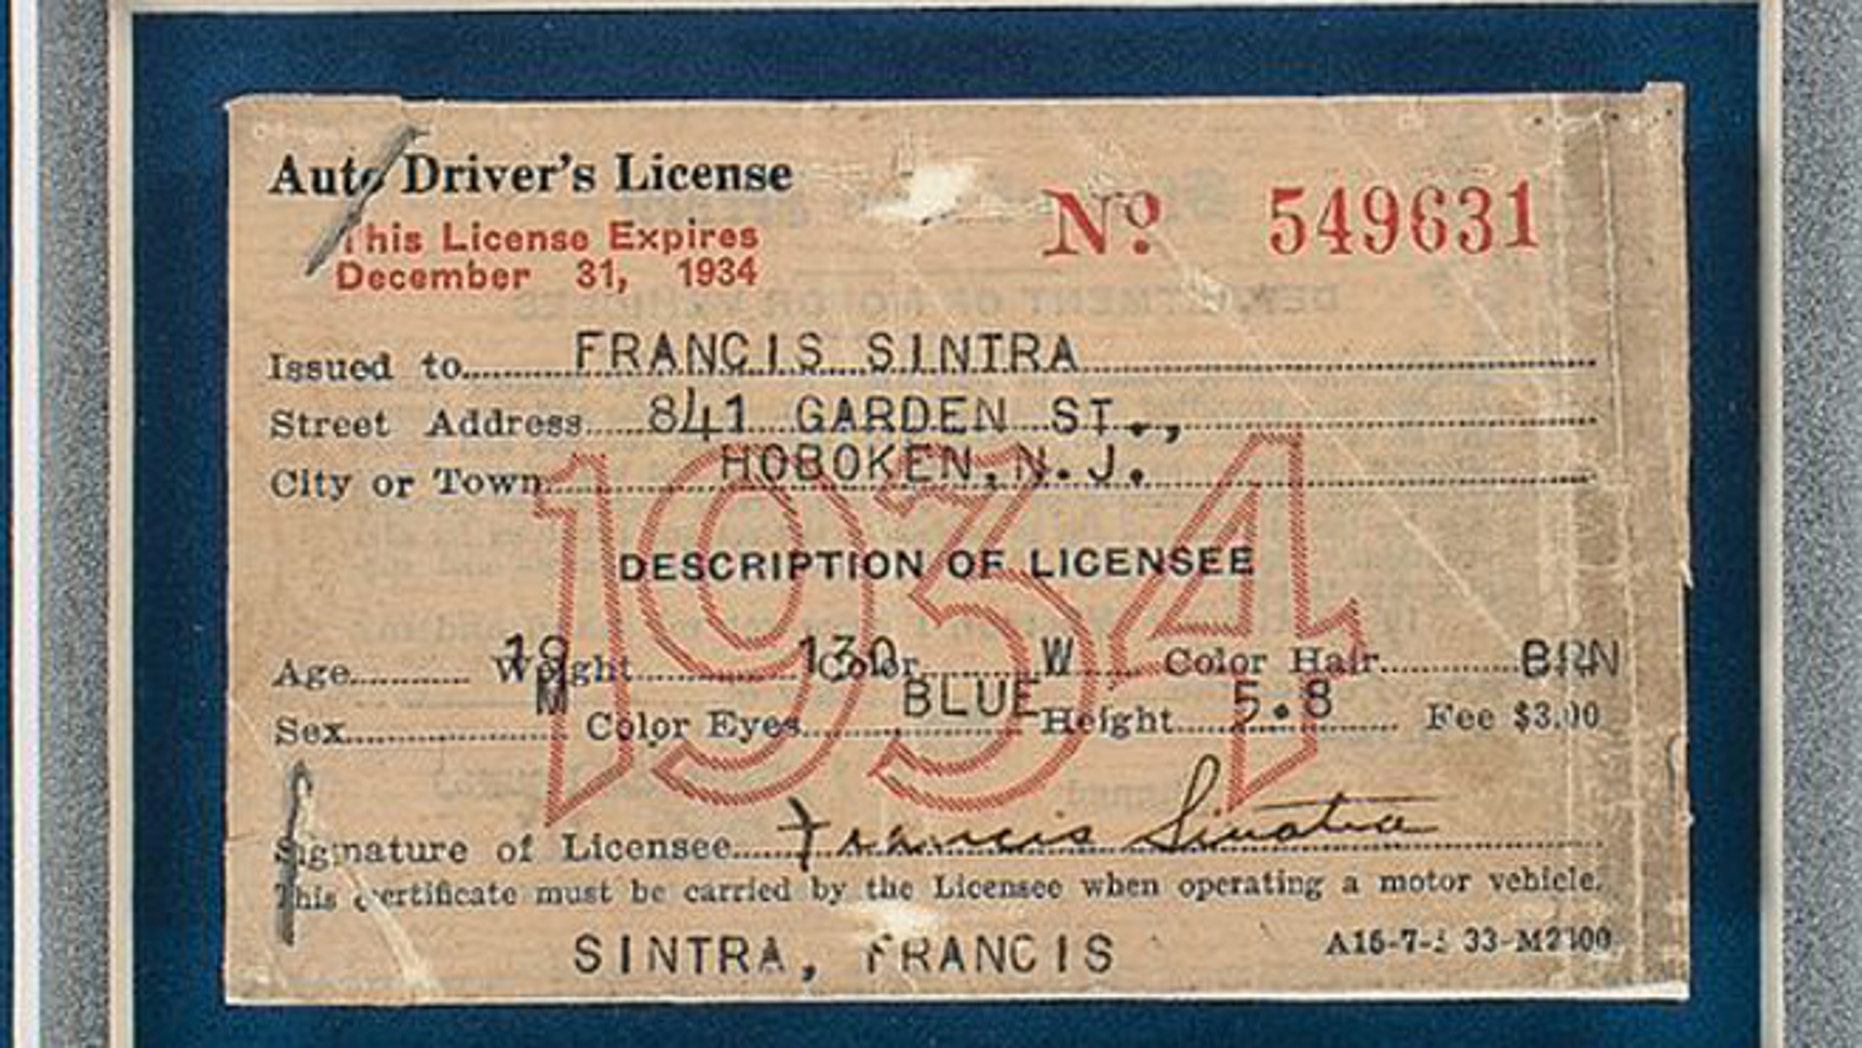 State-issued license sells for over $15,000 and confirms that Frank Sinatra had blue eyes.